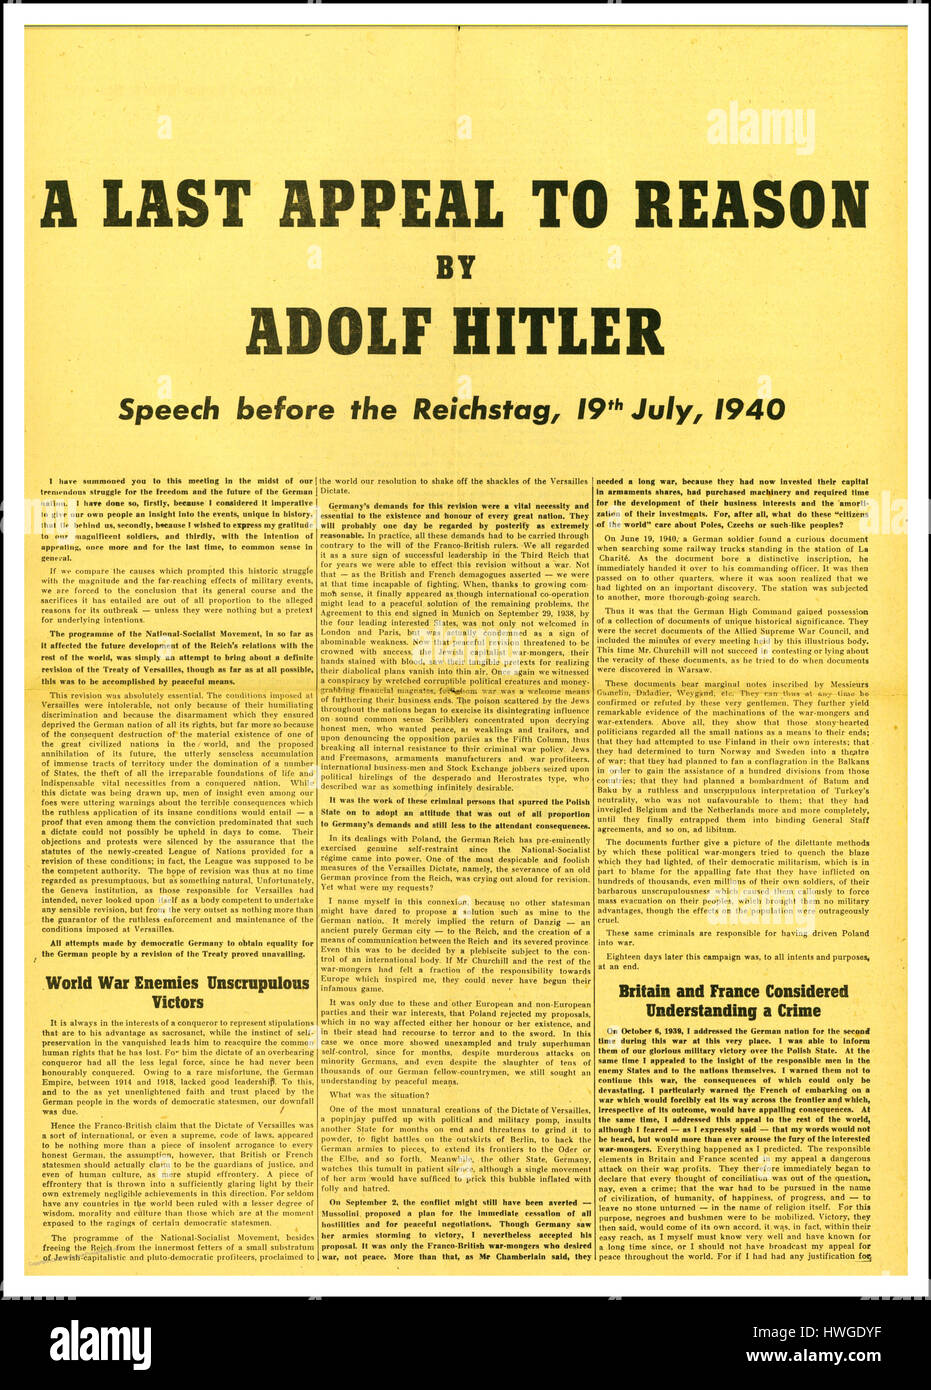 Speech by Adolf Hitler to Reichstag 19th July 1940 to justify his aggressive warmongering  'Last Appeal To Reason' - Stock Image